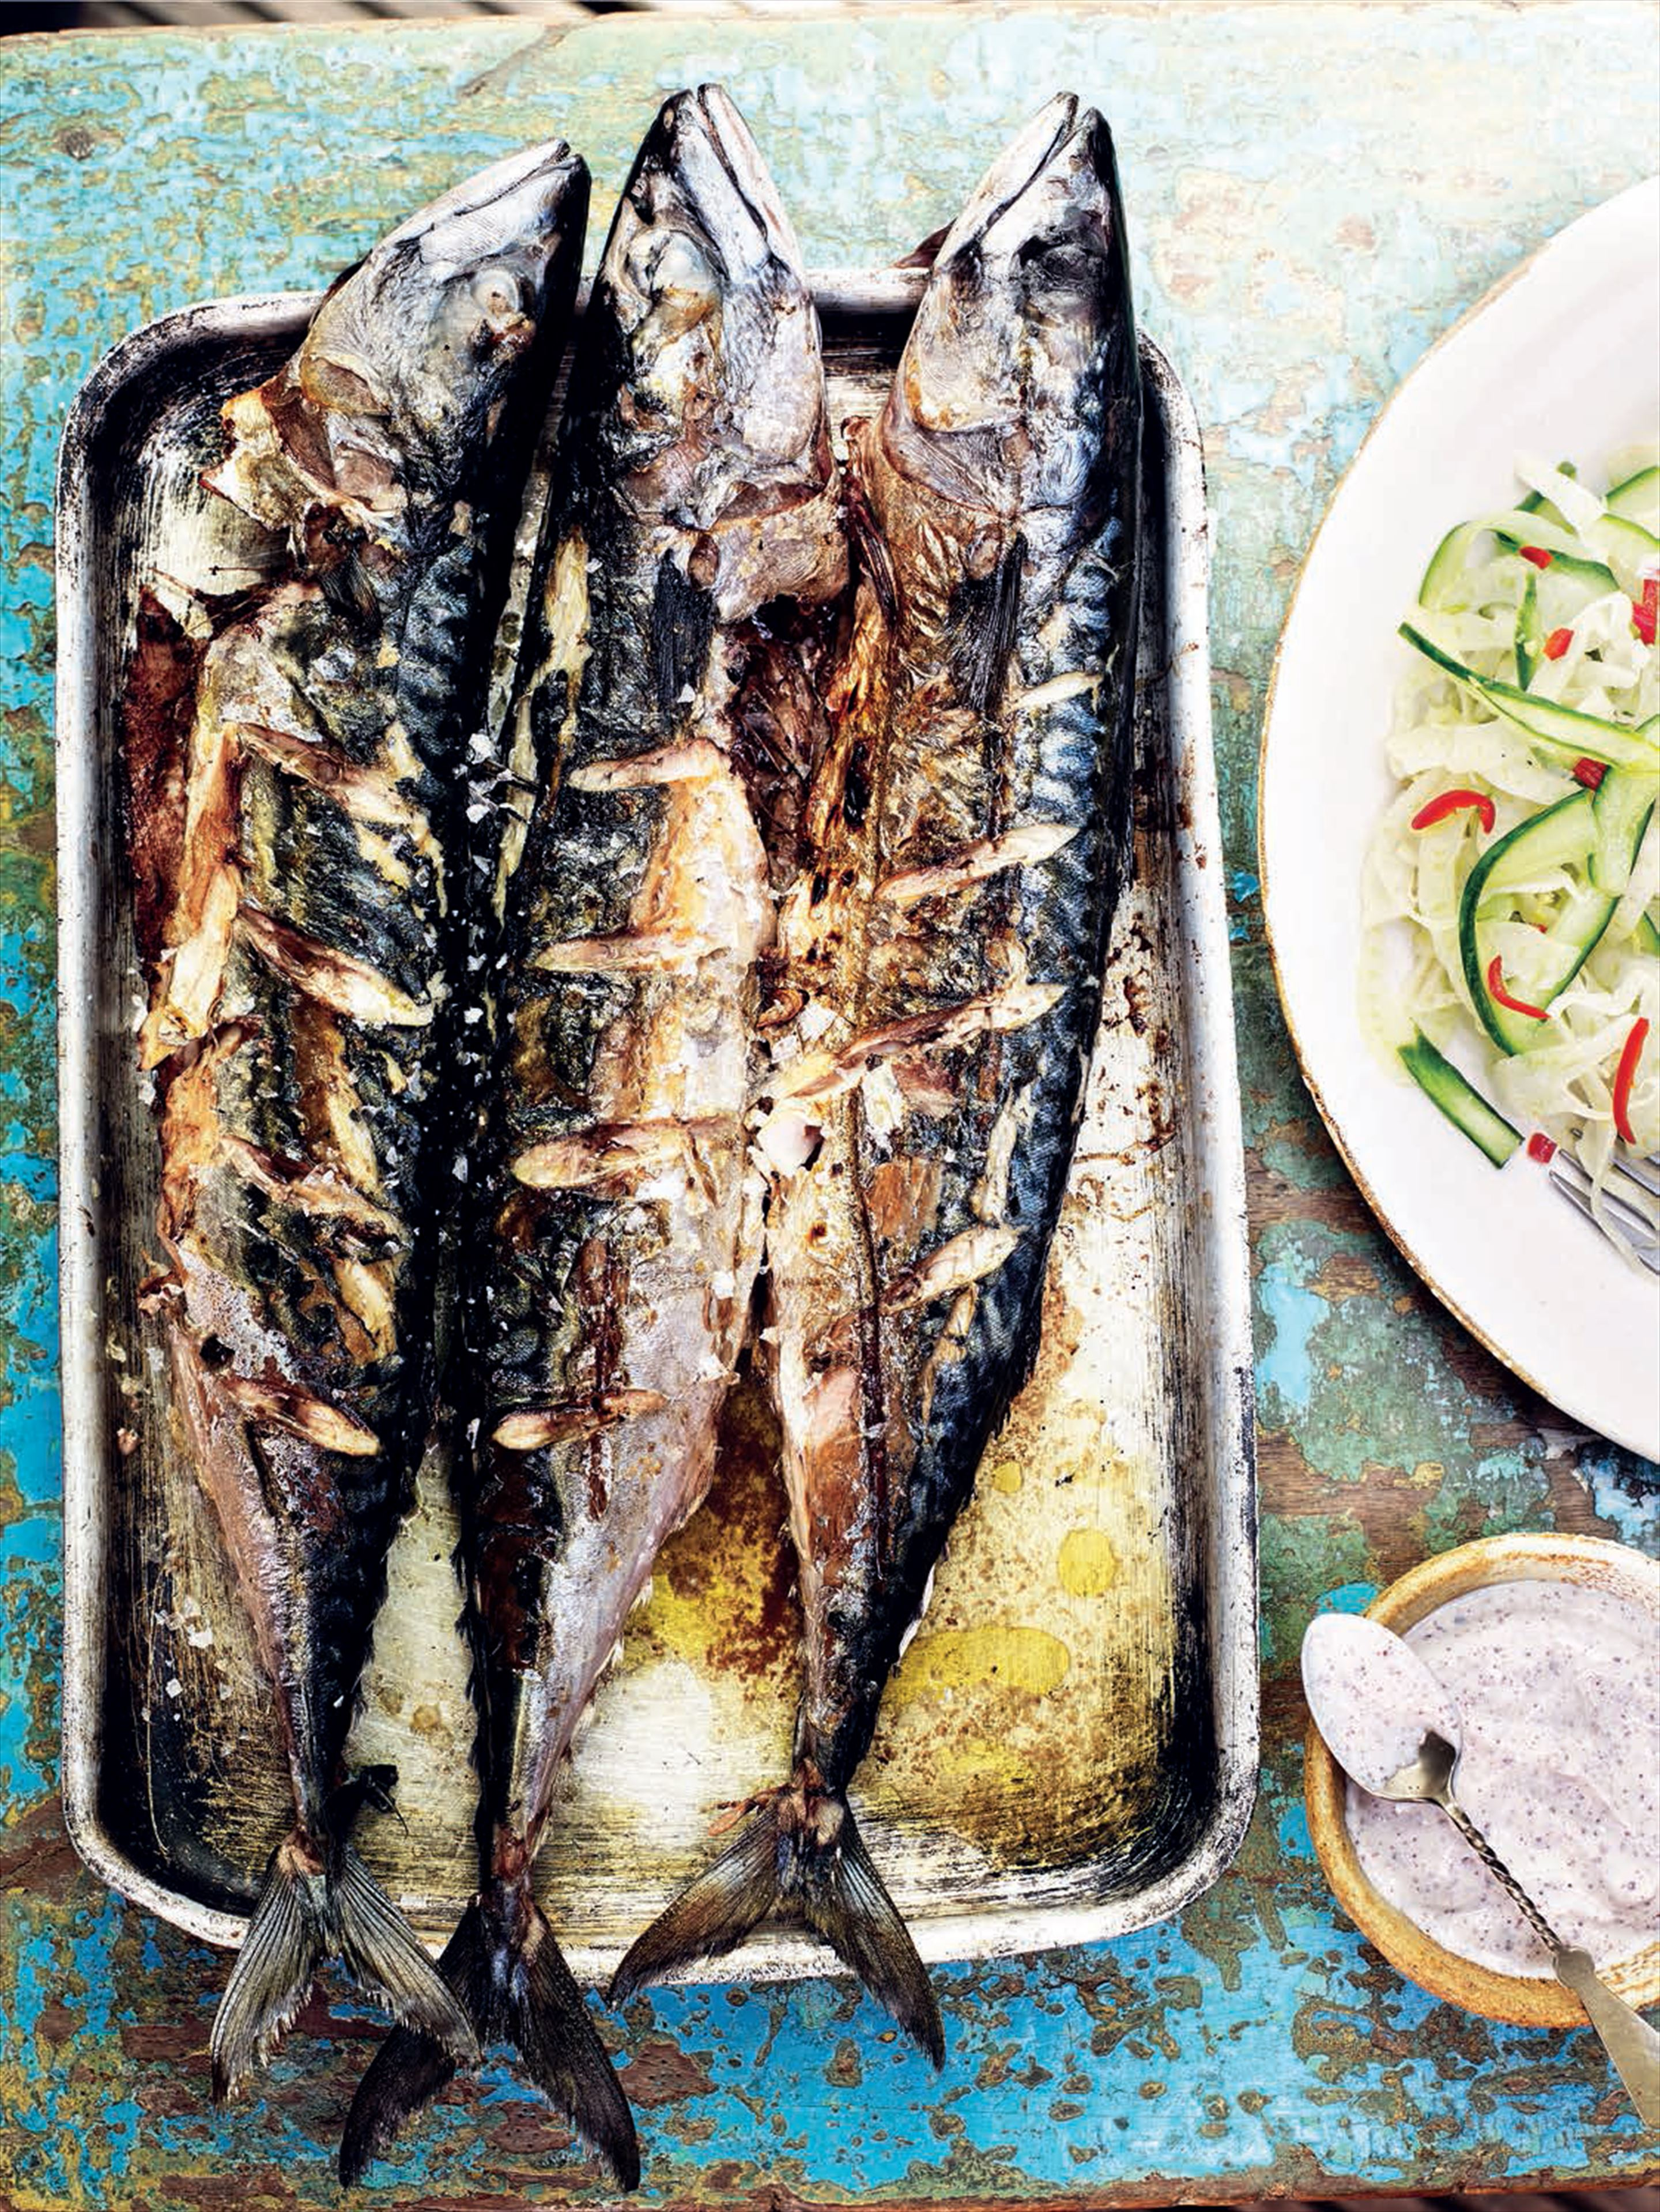 Grilled mackerel with fennel, yogurt and sumac salad